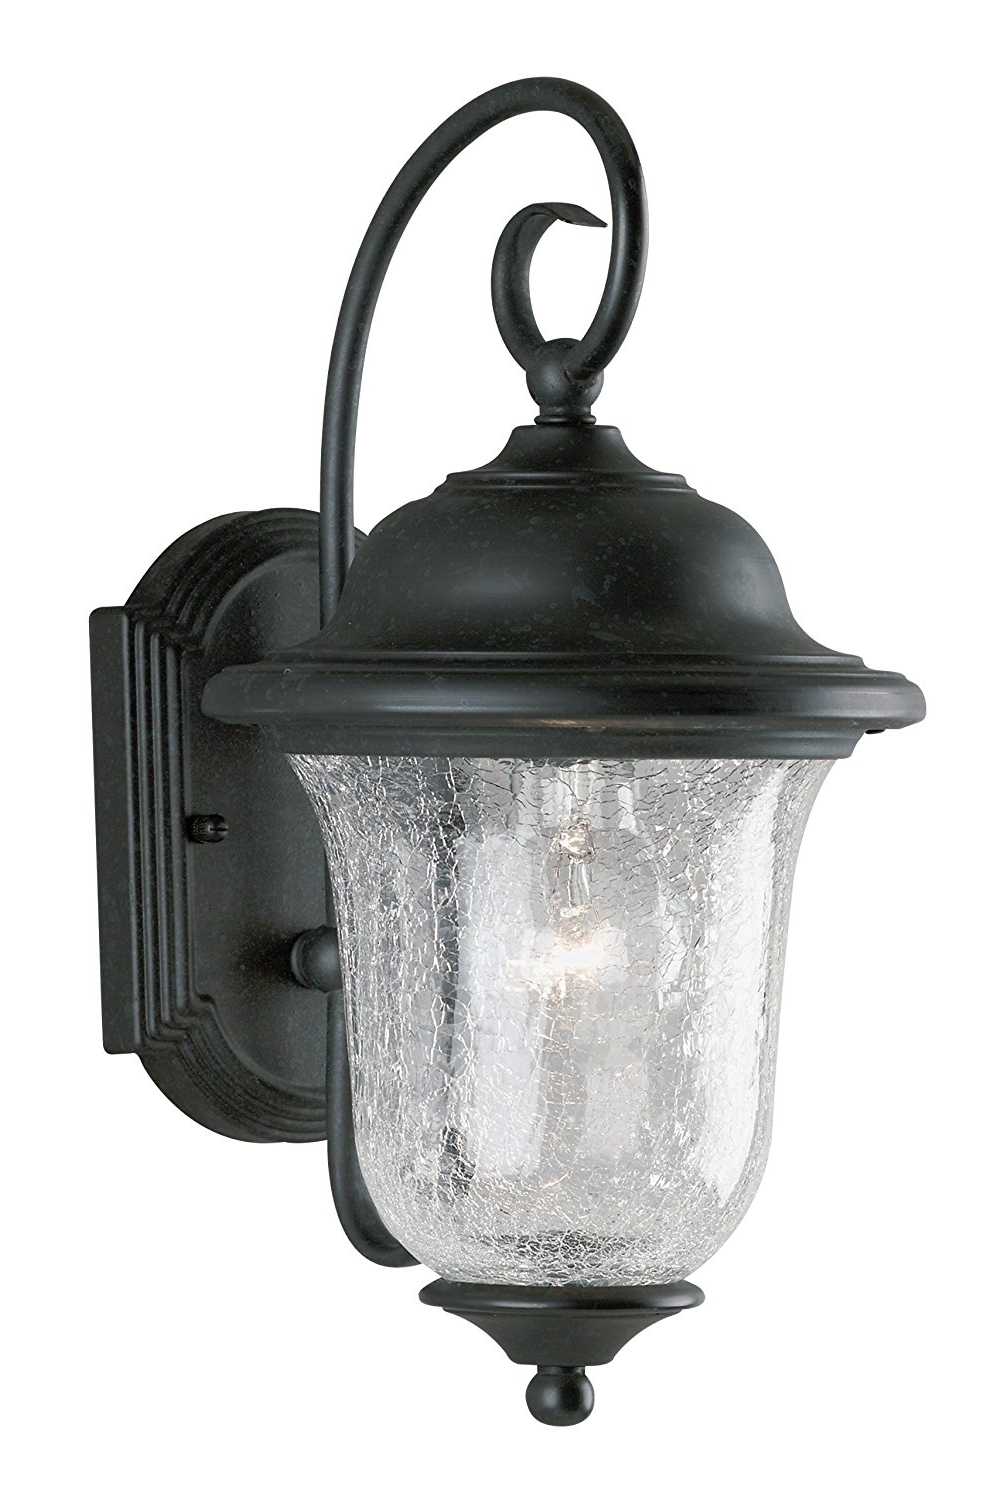 Favorite Vintage Exterior Lighting Outdoor Porch Light With Outlet Gfci Wall With Regard To Outdoor Lighting Onion Lanterns (View 18 of 20)